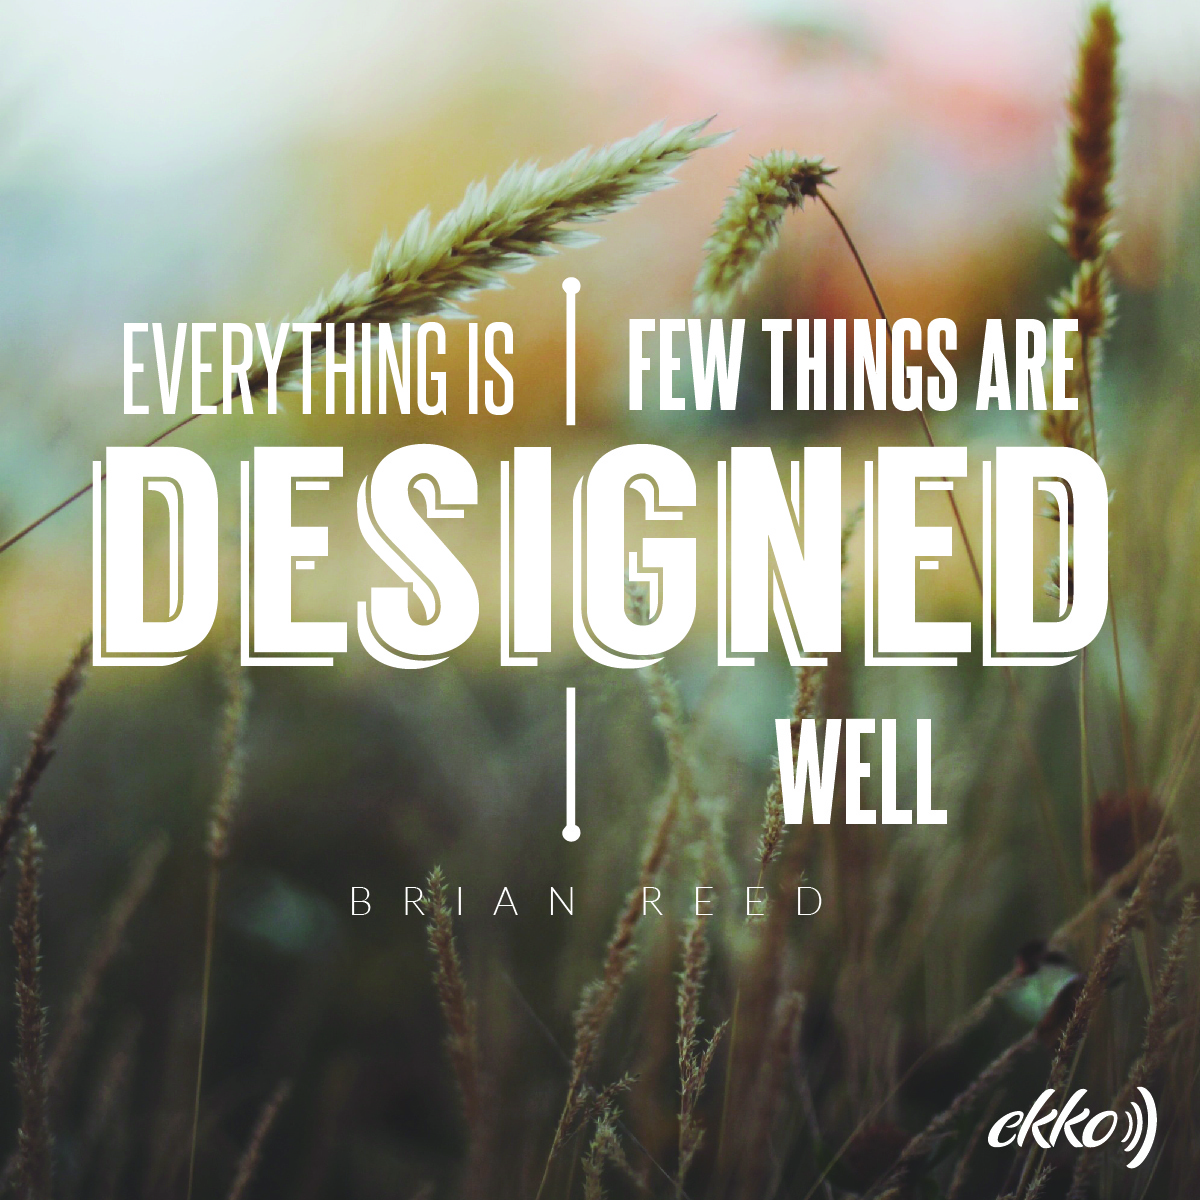 designed-well-01